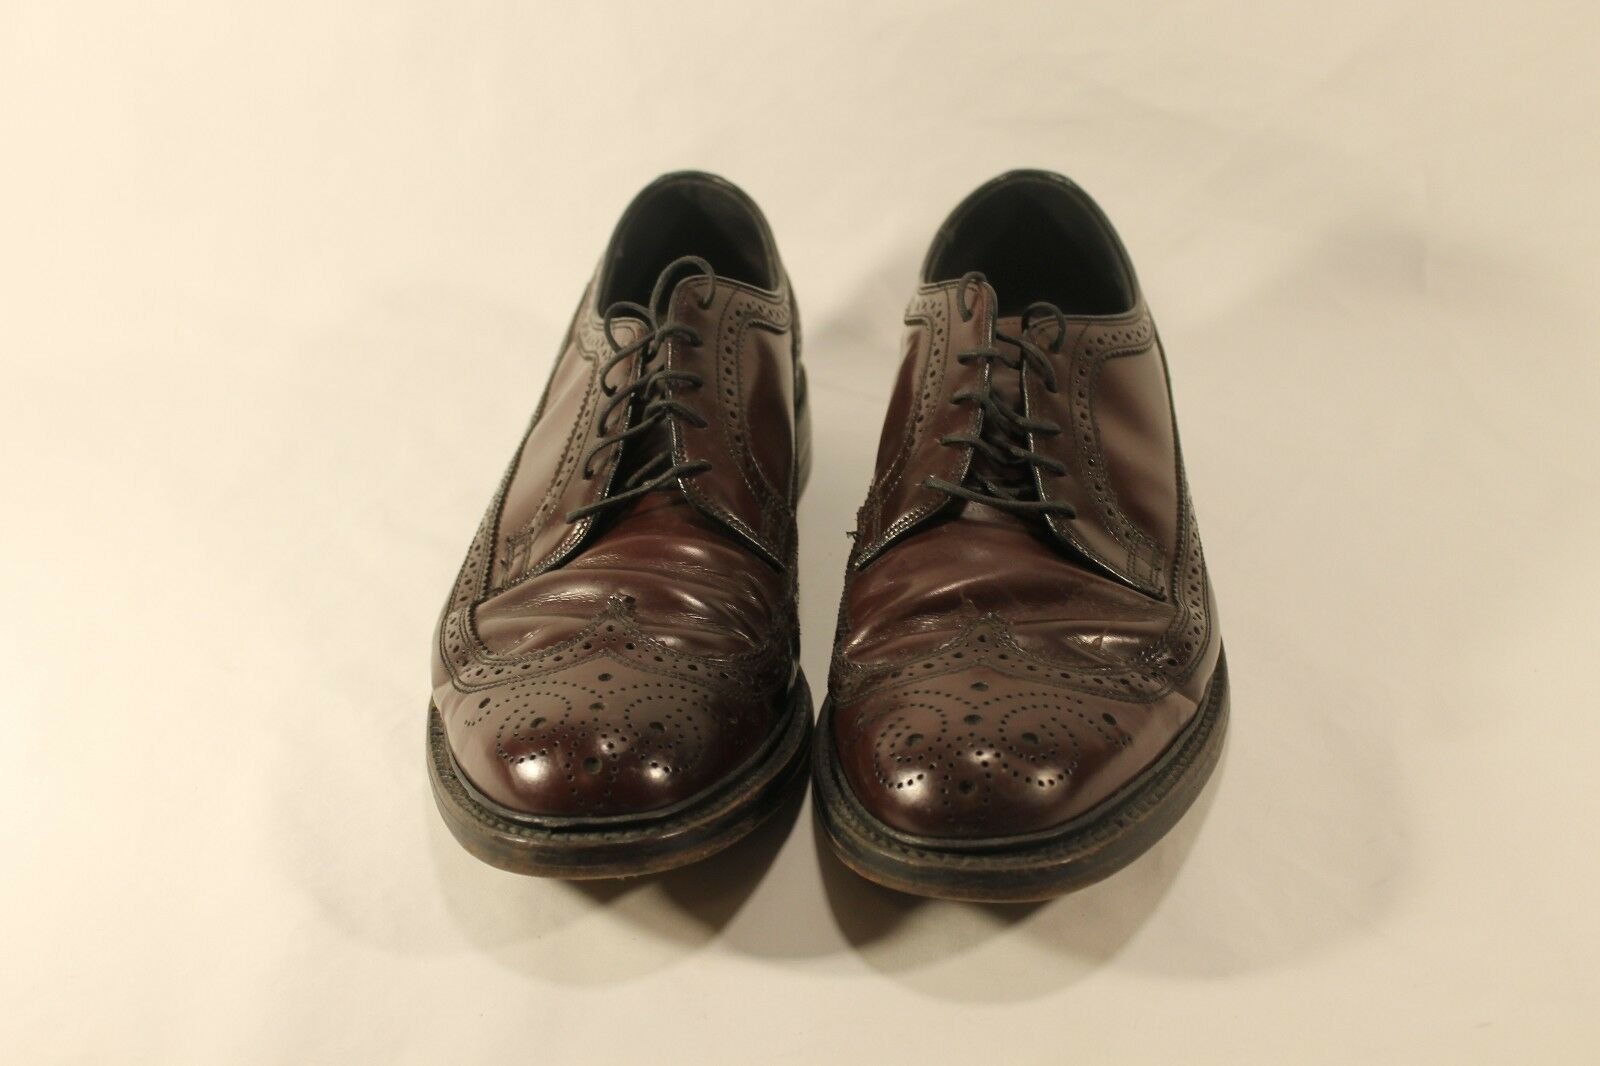 Mens Walk Over Burgundy LongWing Wingtip Oxford Oxford Oxford Dress Brogue schuhe 10.5 C A USA 7cc629